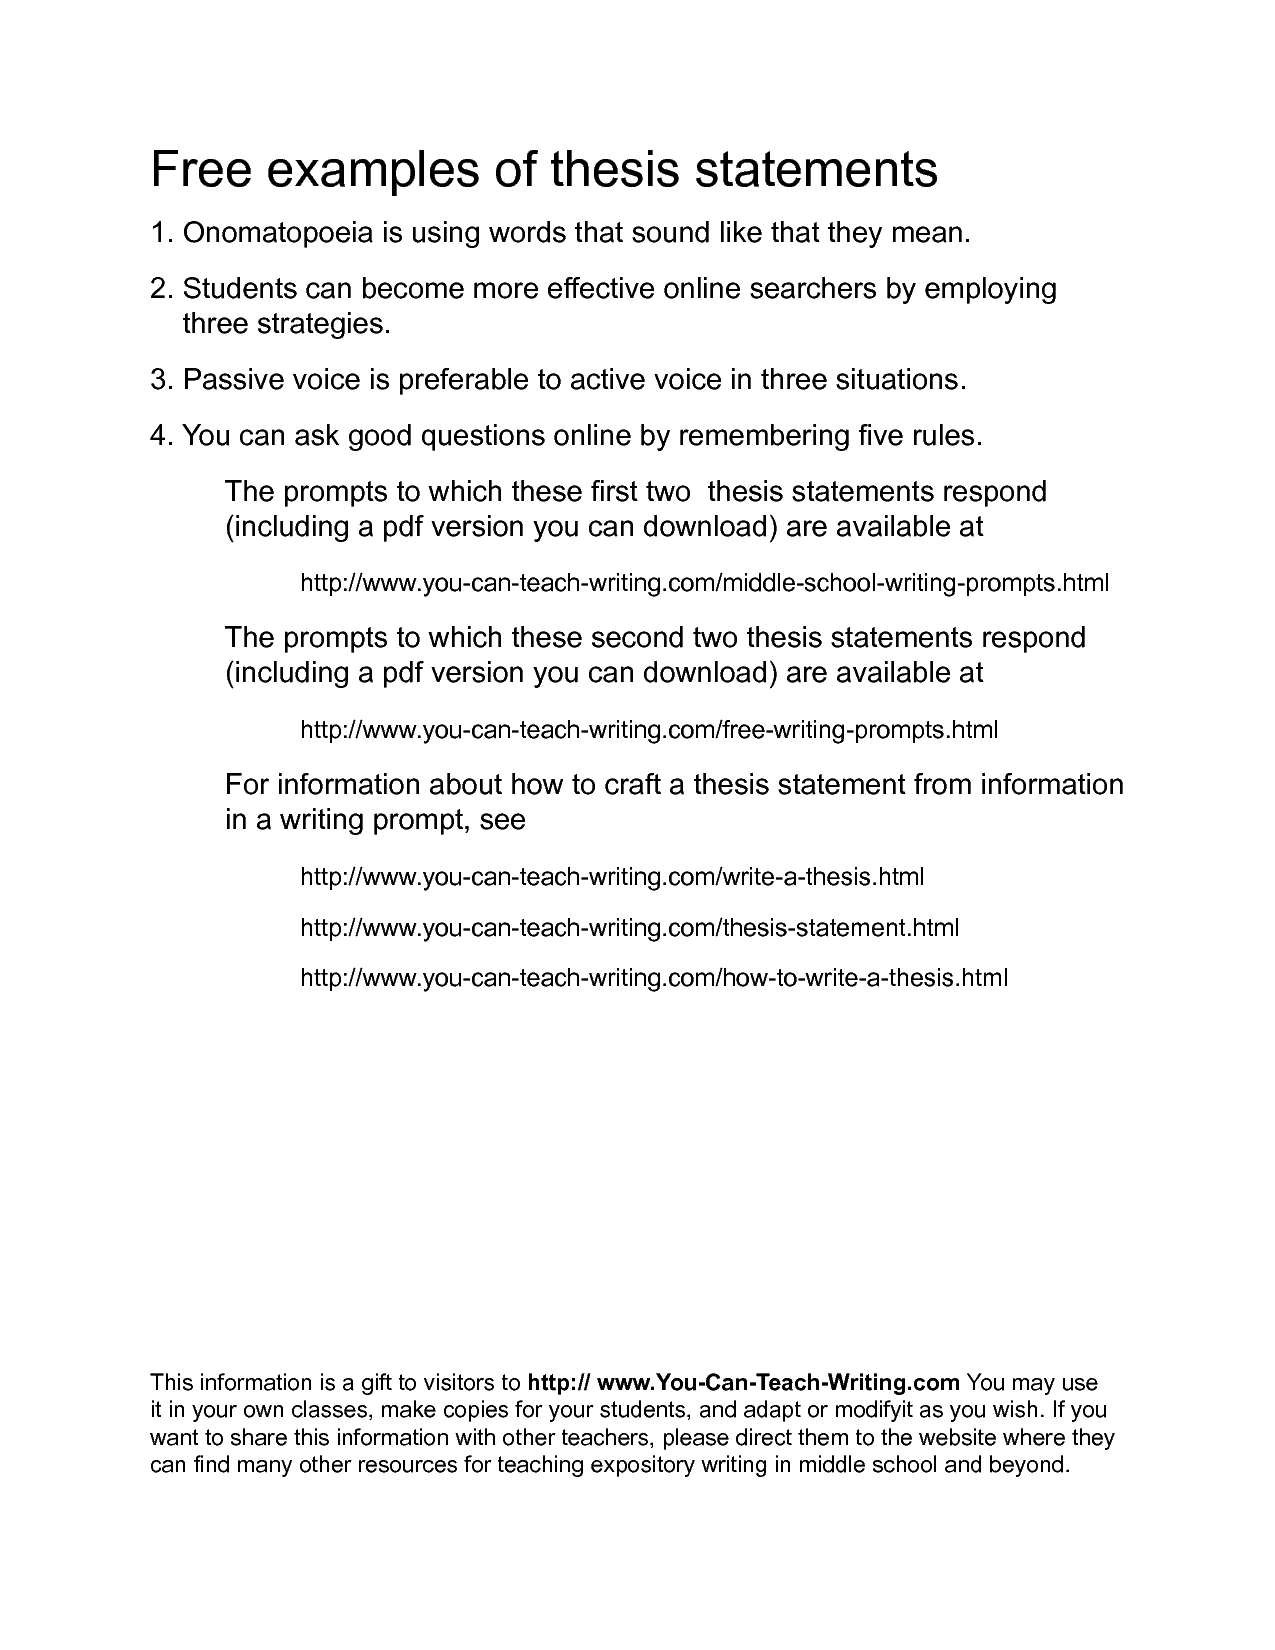 how to write a thesis statement 3 examples